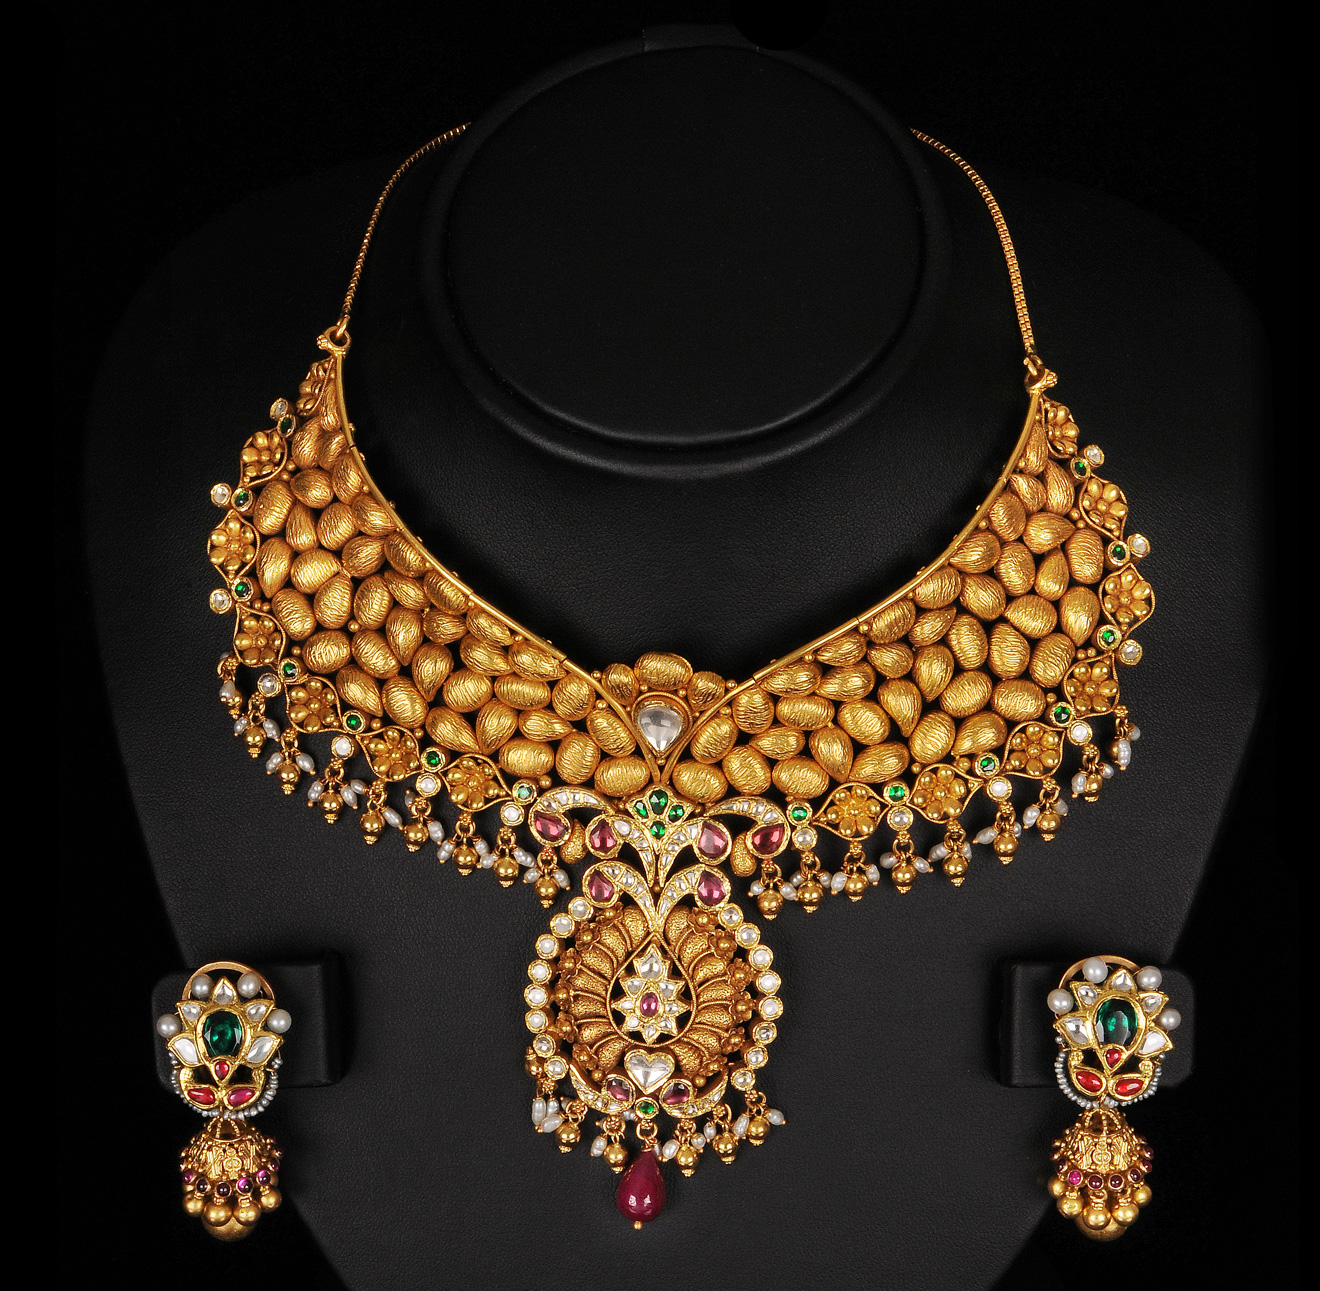 indiangoldesigns.com: Beautiful antique Bridal Necklace ...